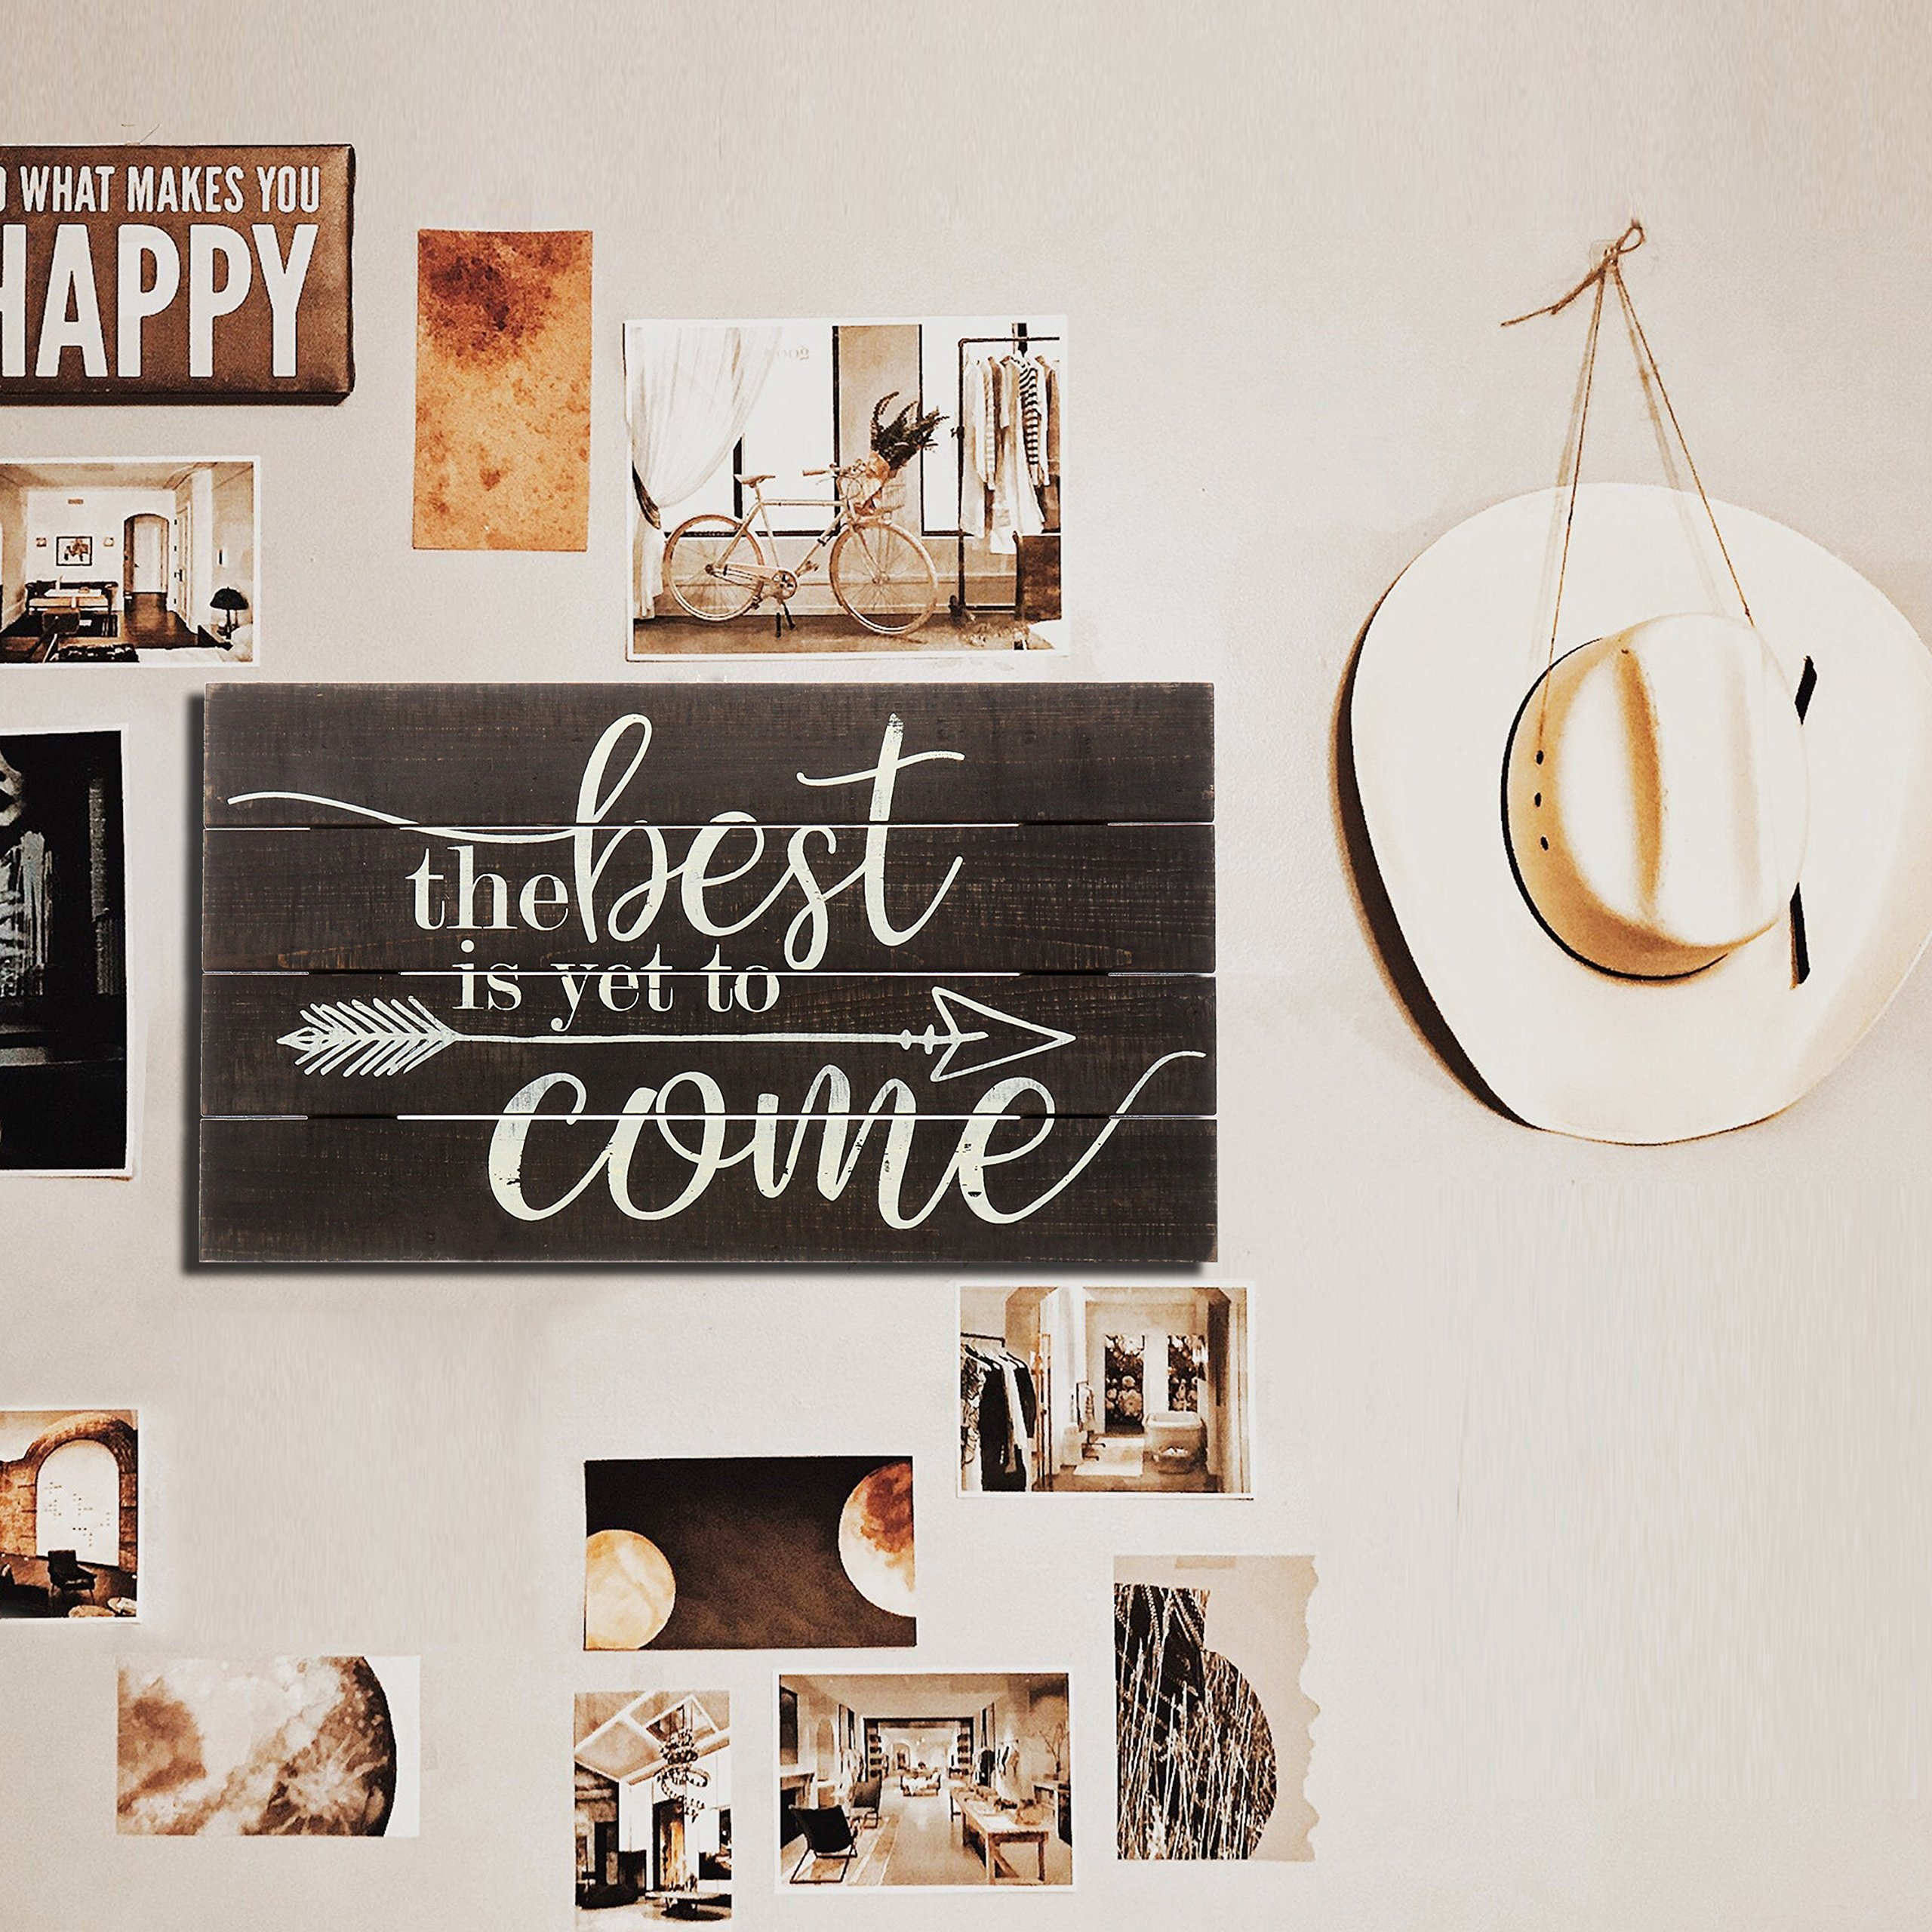 """Barnyard Designs The Best Is Yet To Come Rustic Wood Hanging Sign Decorative Wall Decor 17"""" x 10"""" by Barnyard Designs (Image #3)"""